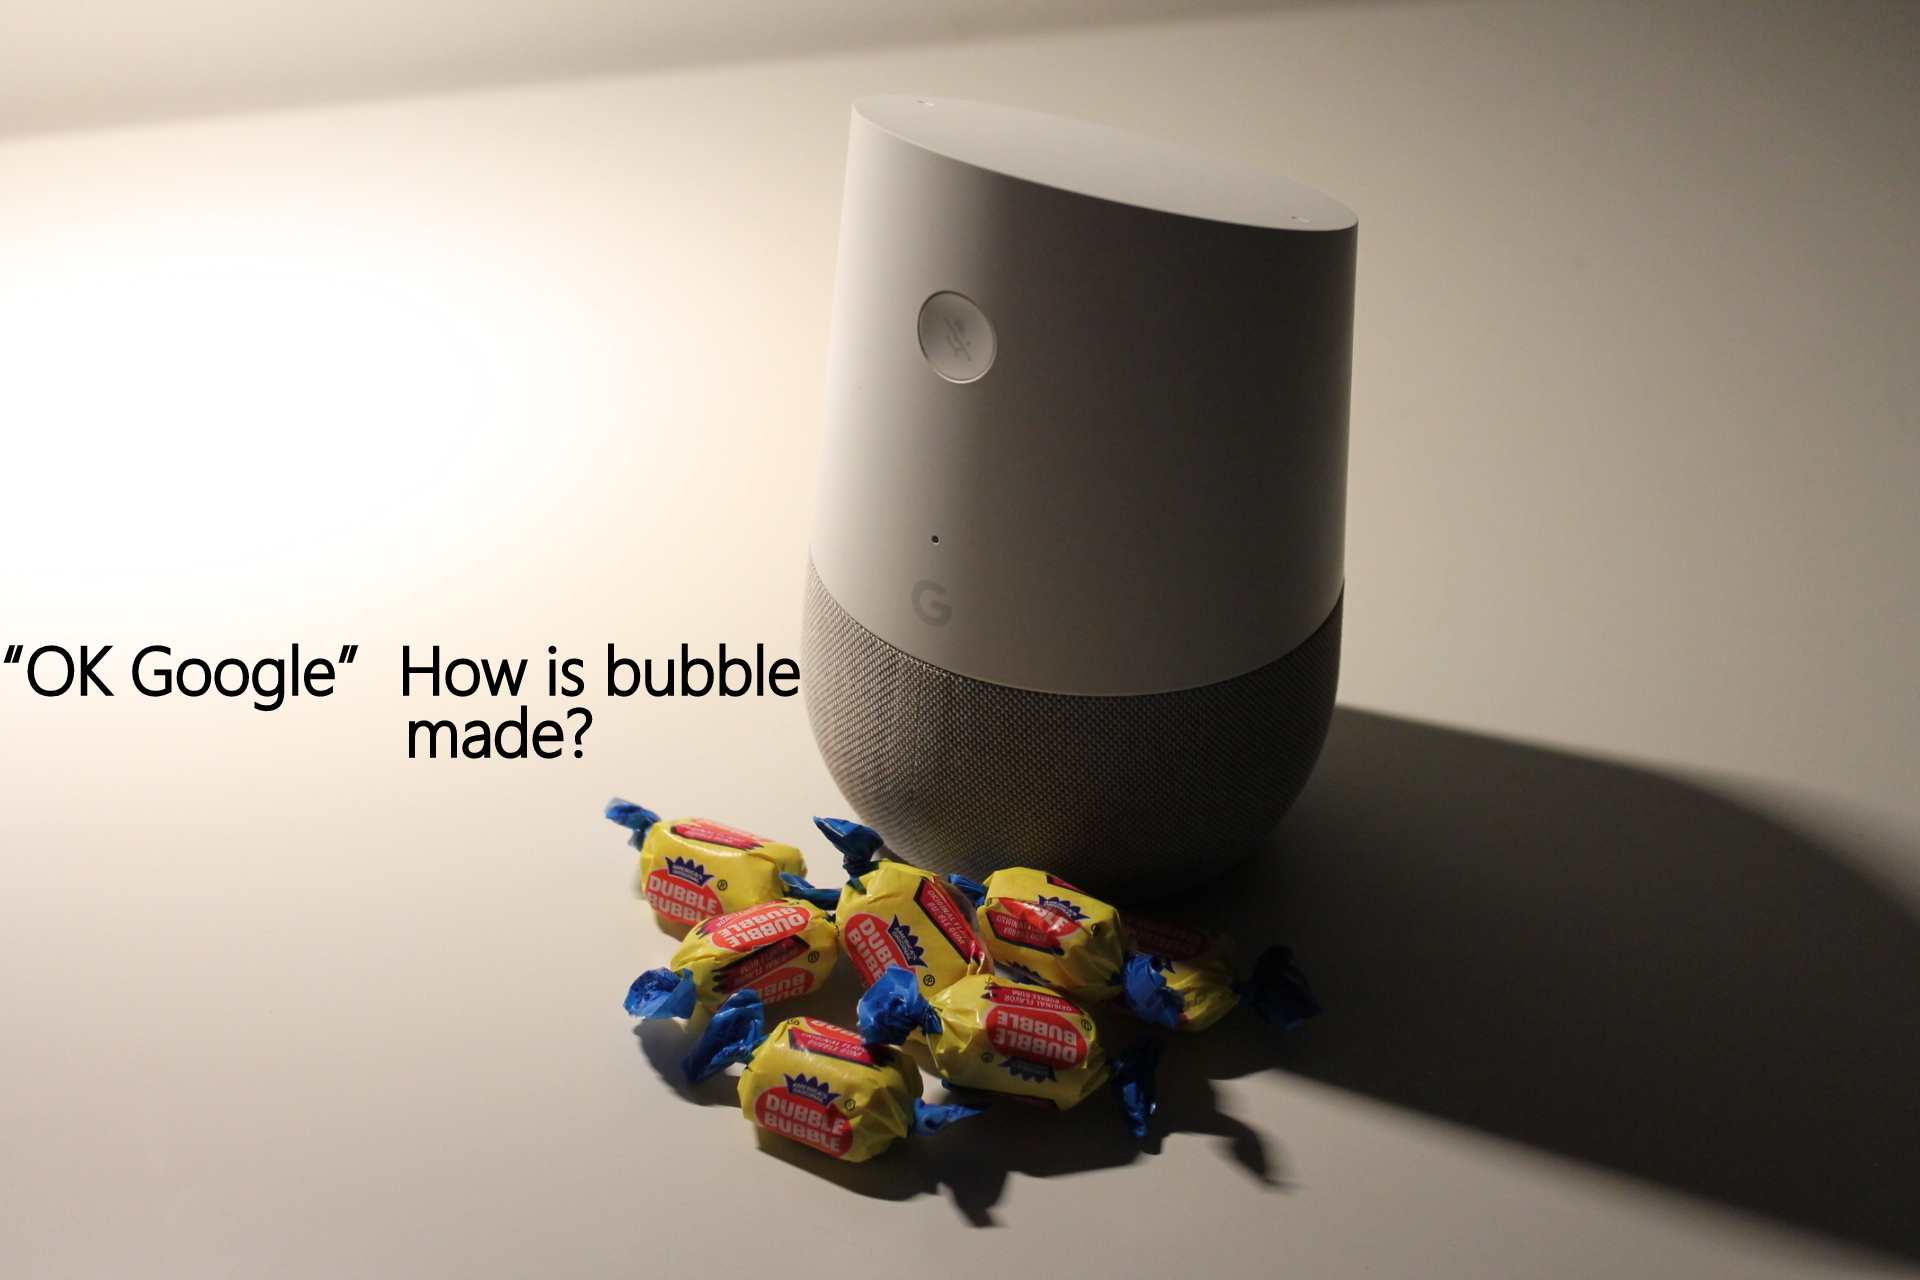 I think I meant to say BUBBLE GUM!!! OOOoops!